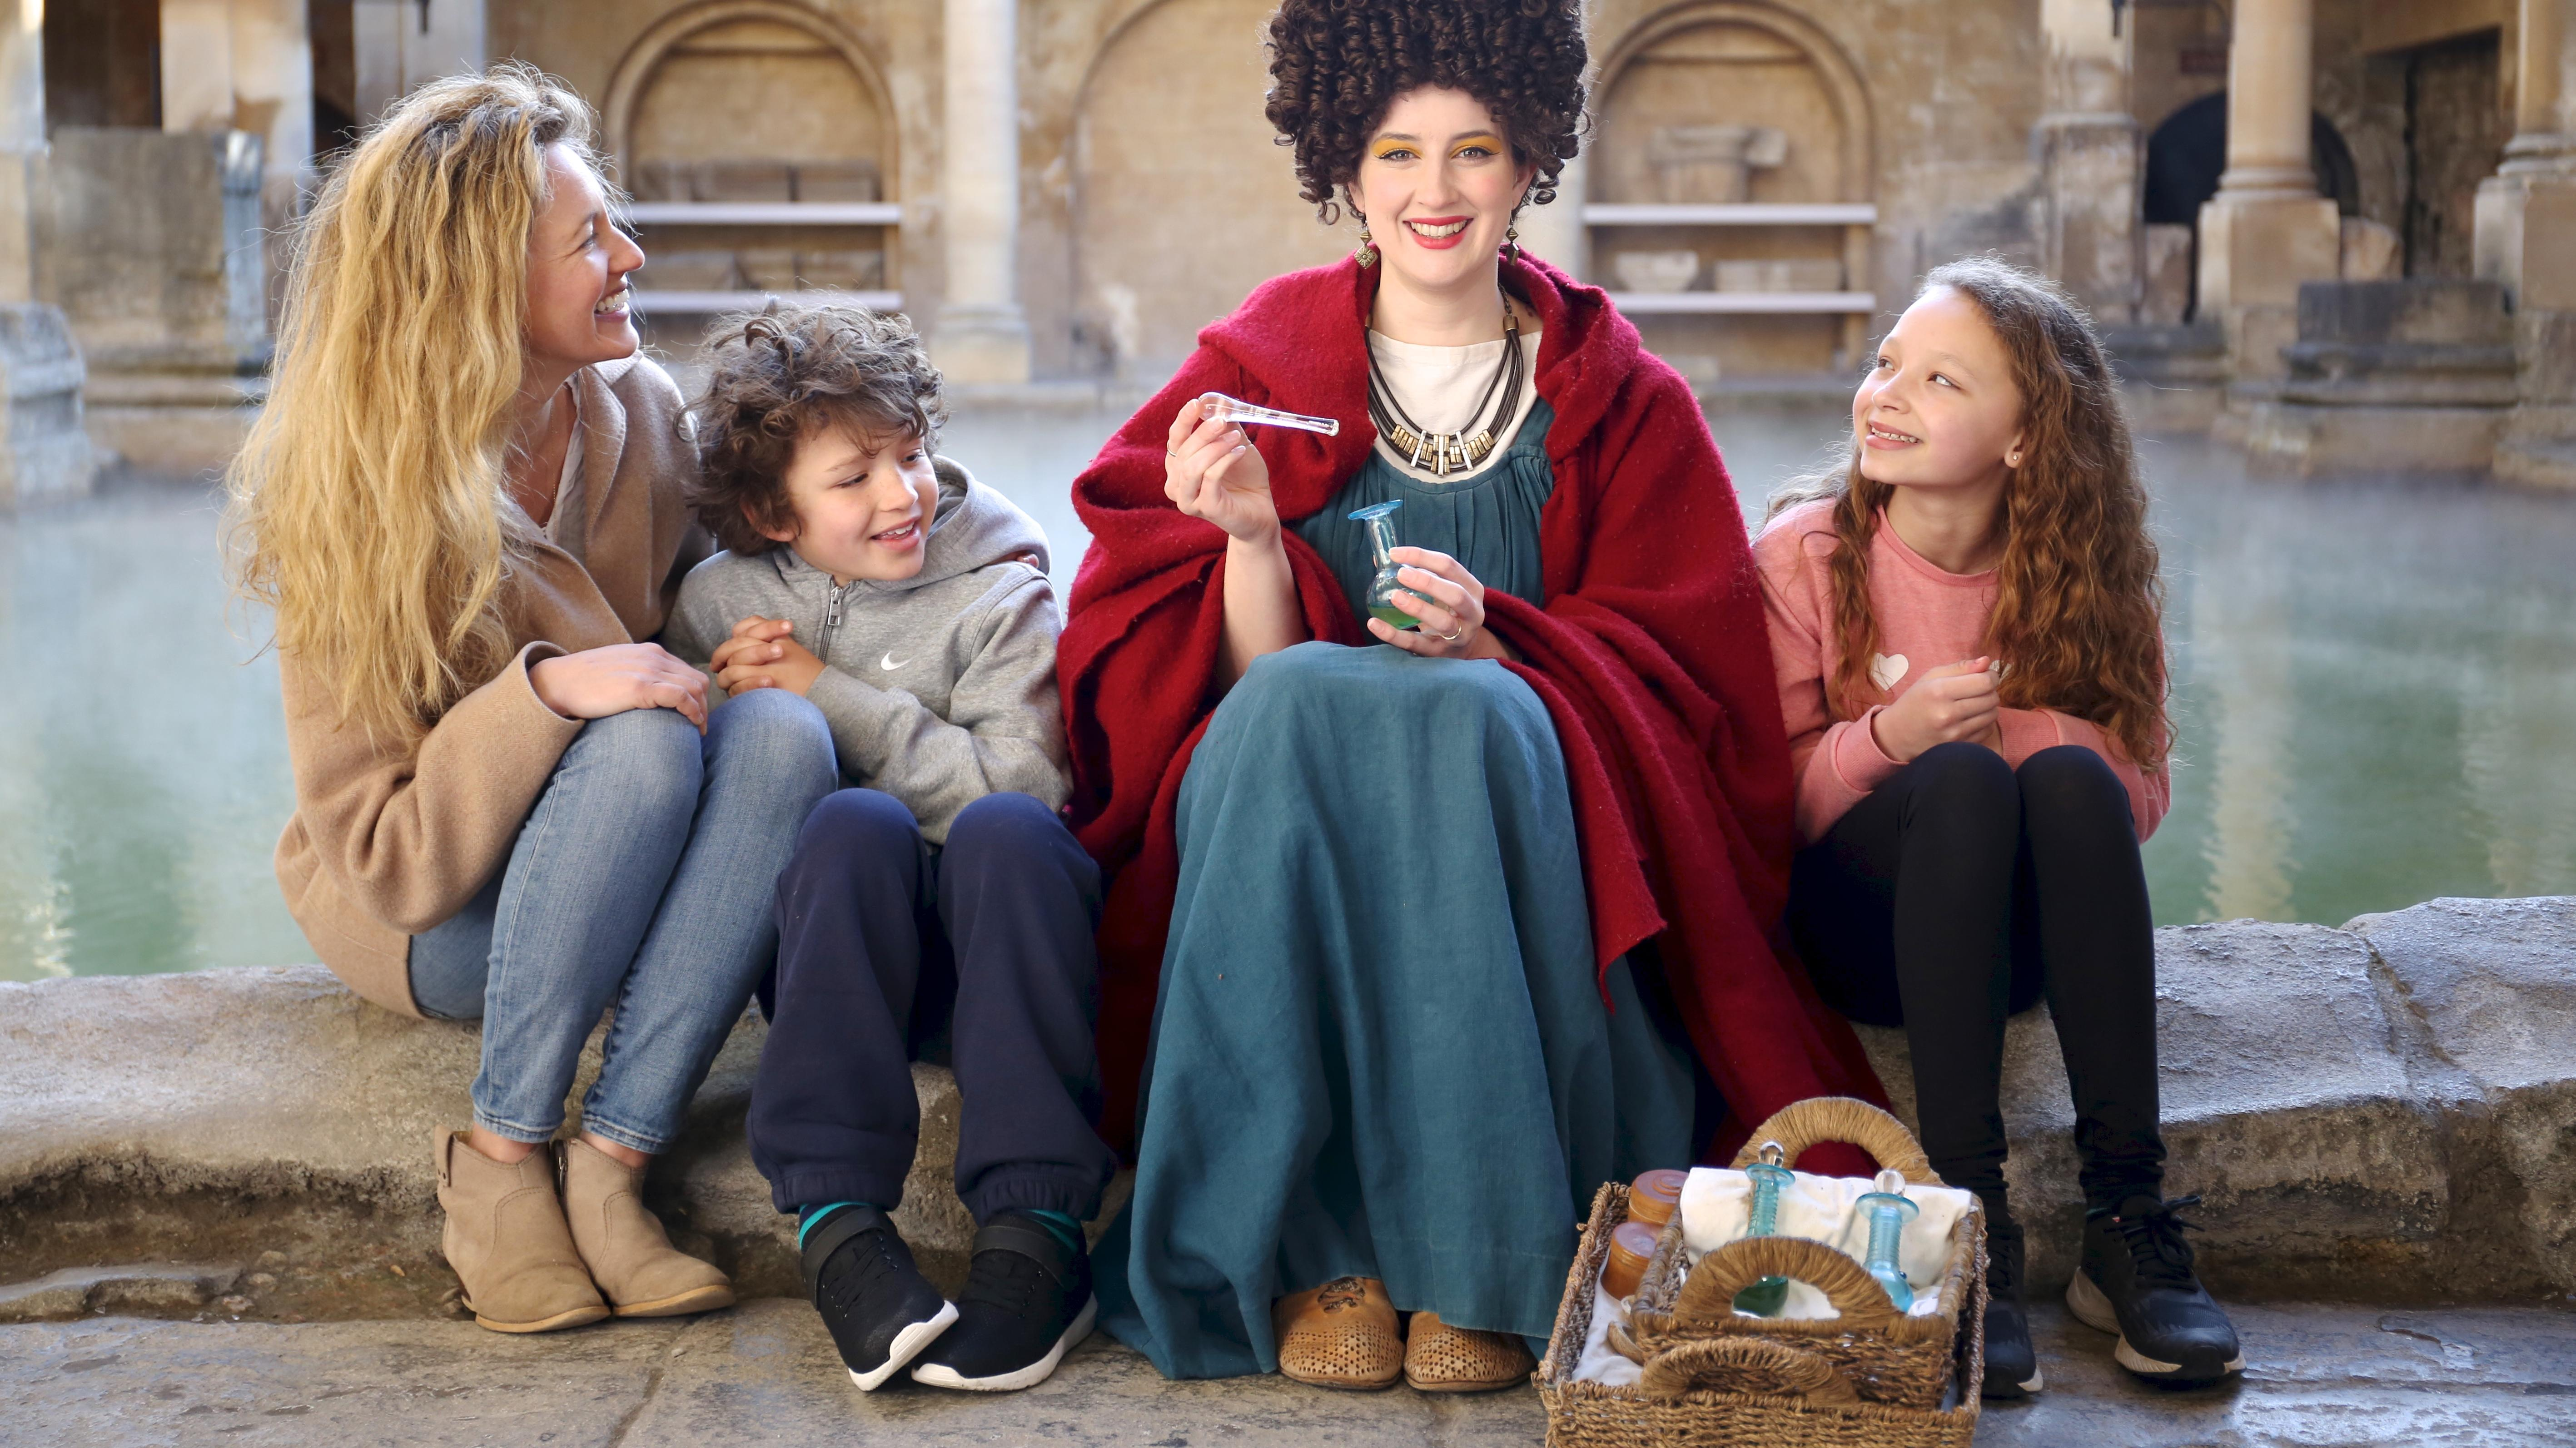 Image: A family interacting with a costumed character